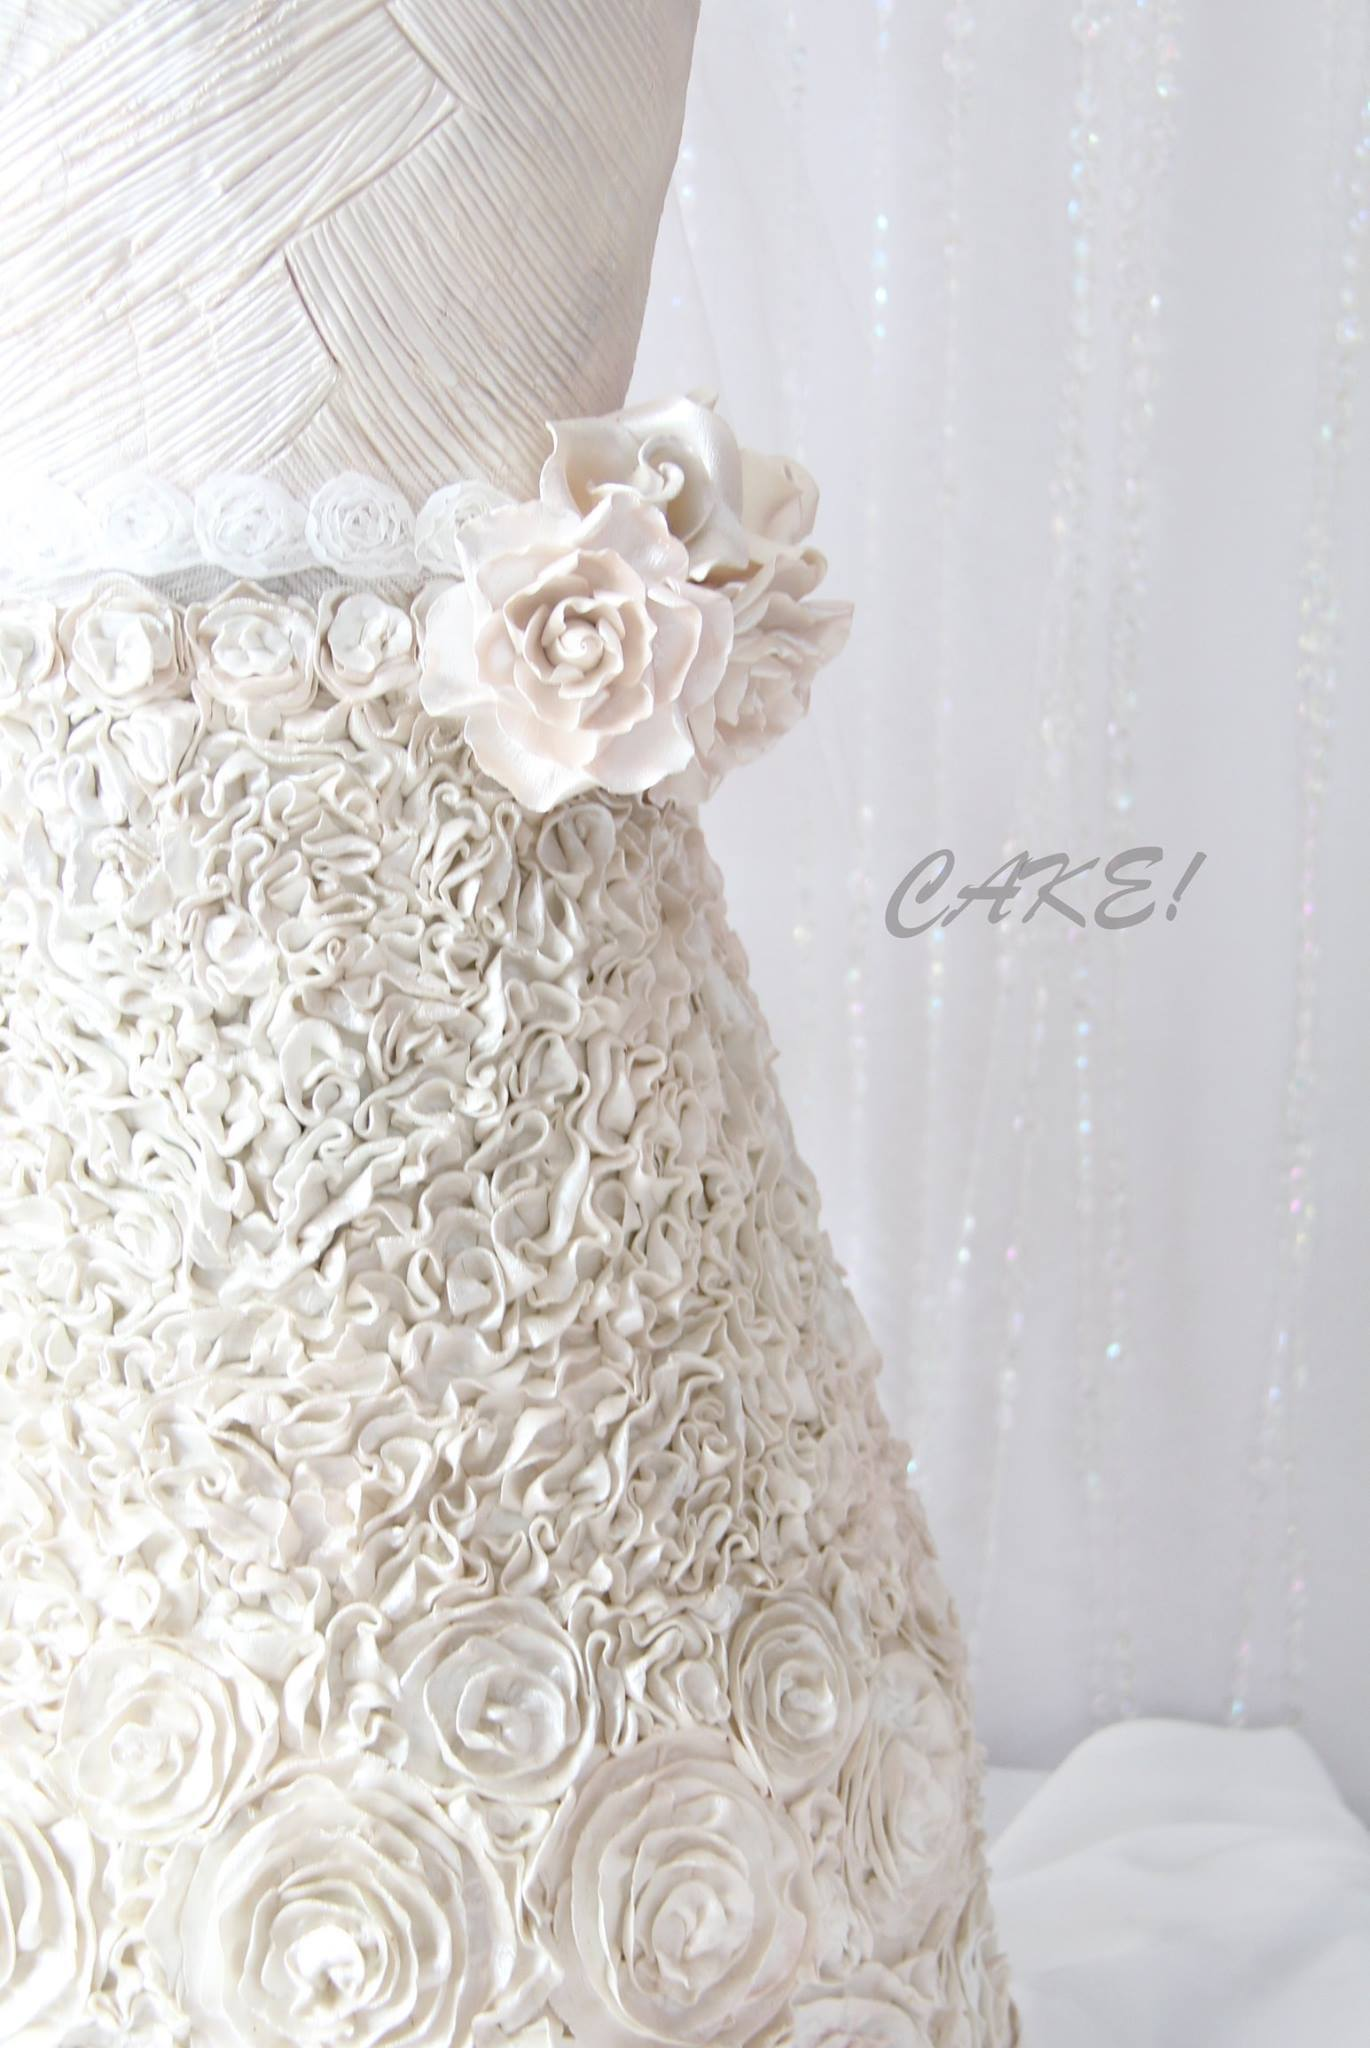 Textured all white Wedding Dress cake